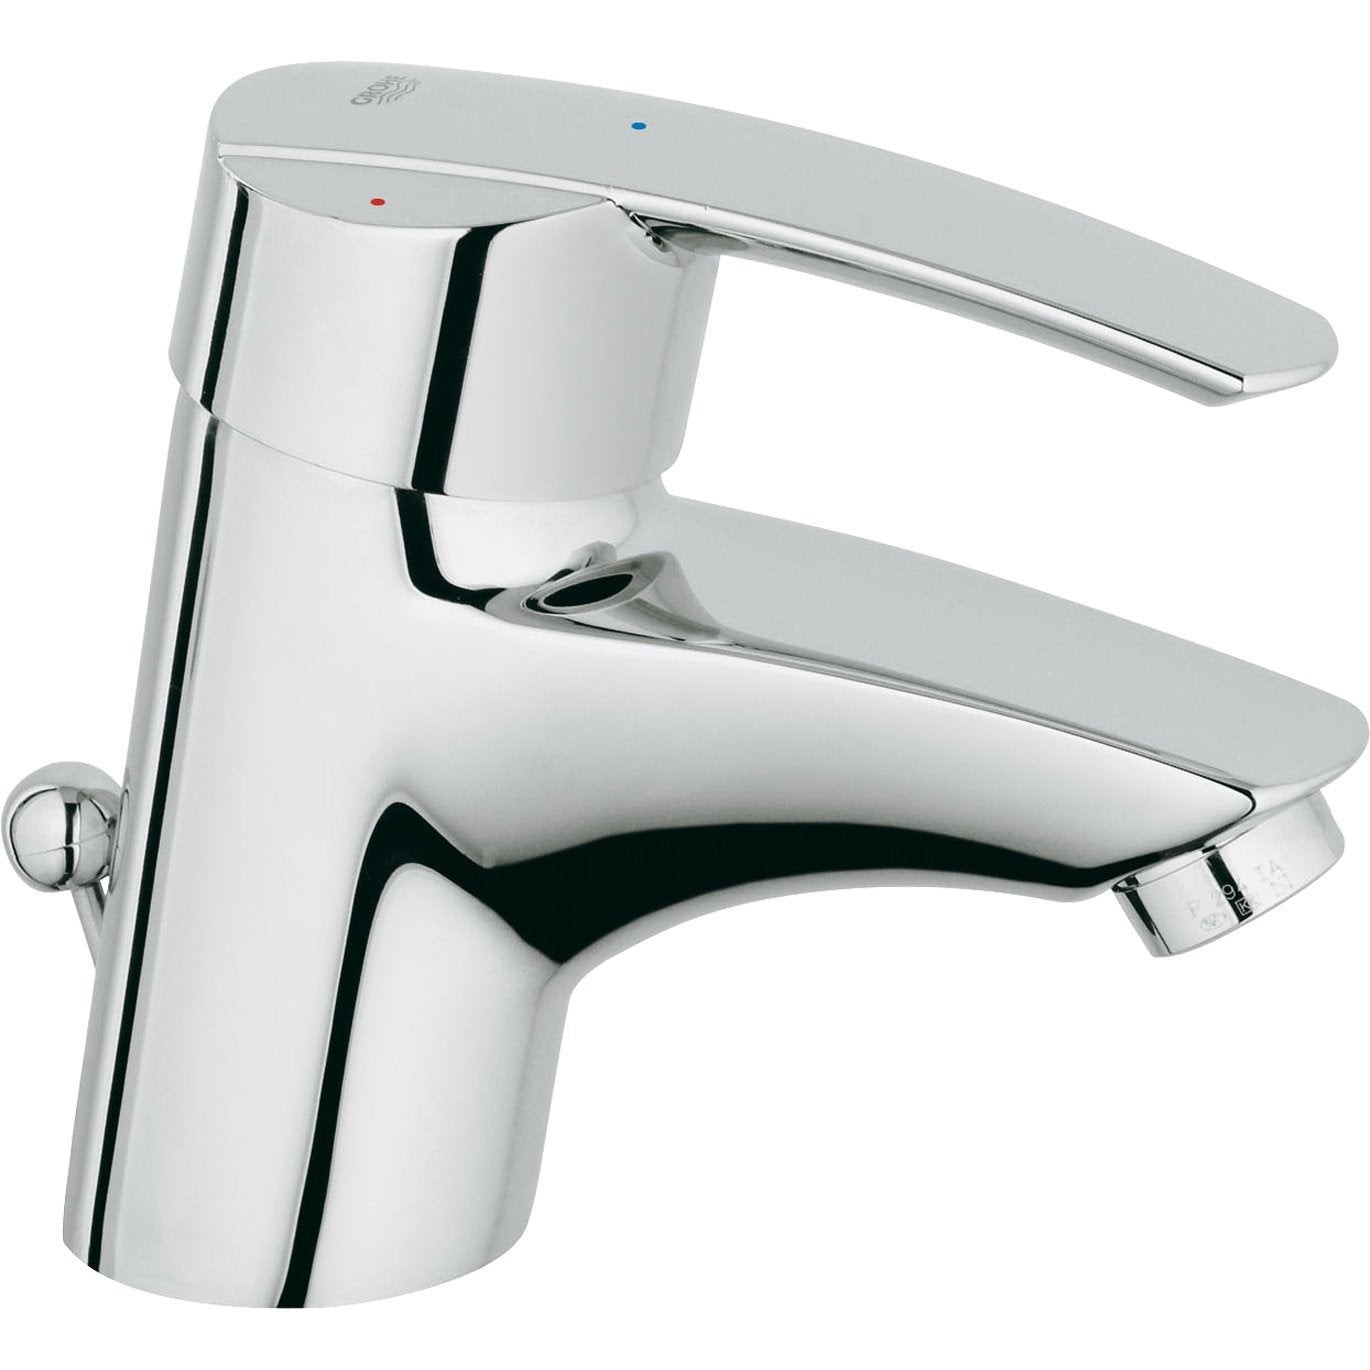 Mitigeur thermostatique bain douche grohe - Mitigeur thermostatique bain douche monotrou grohe ...